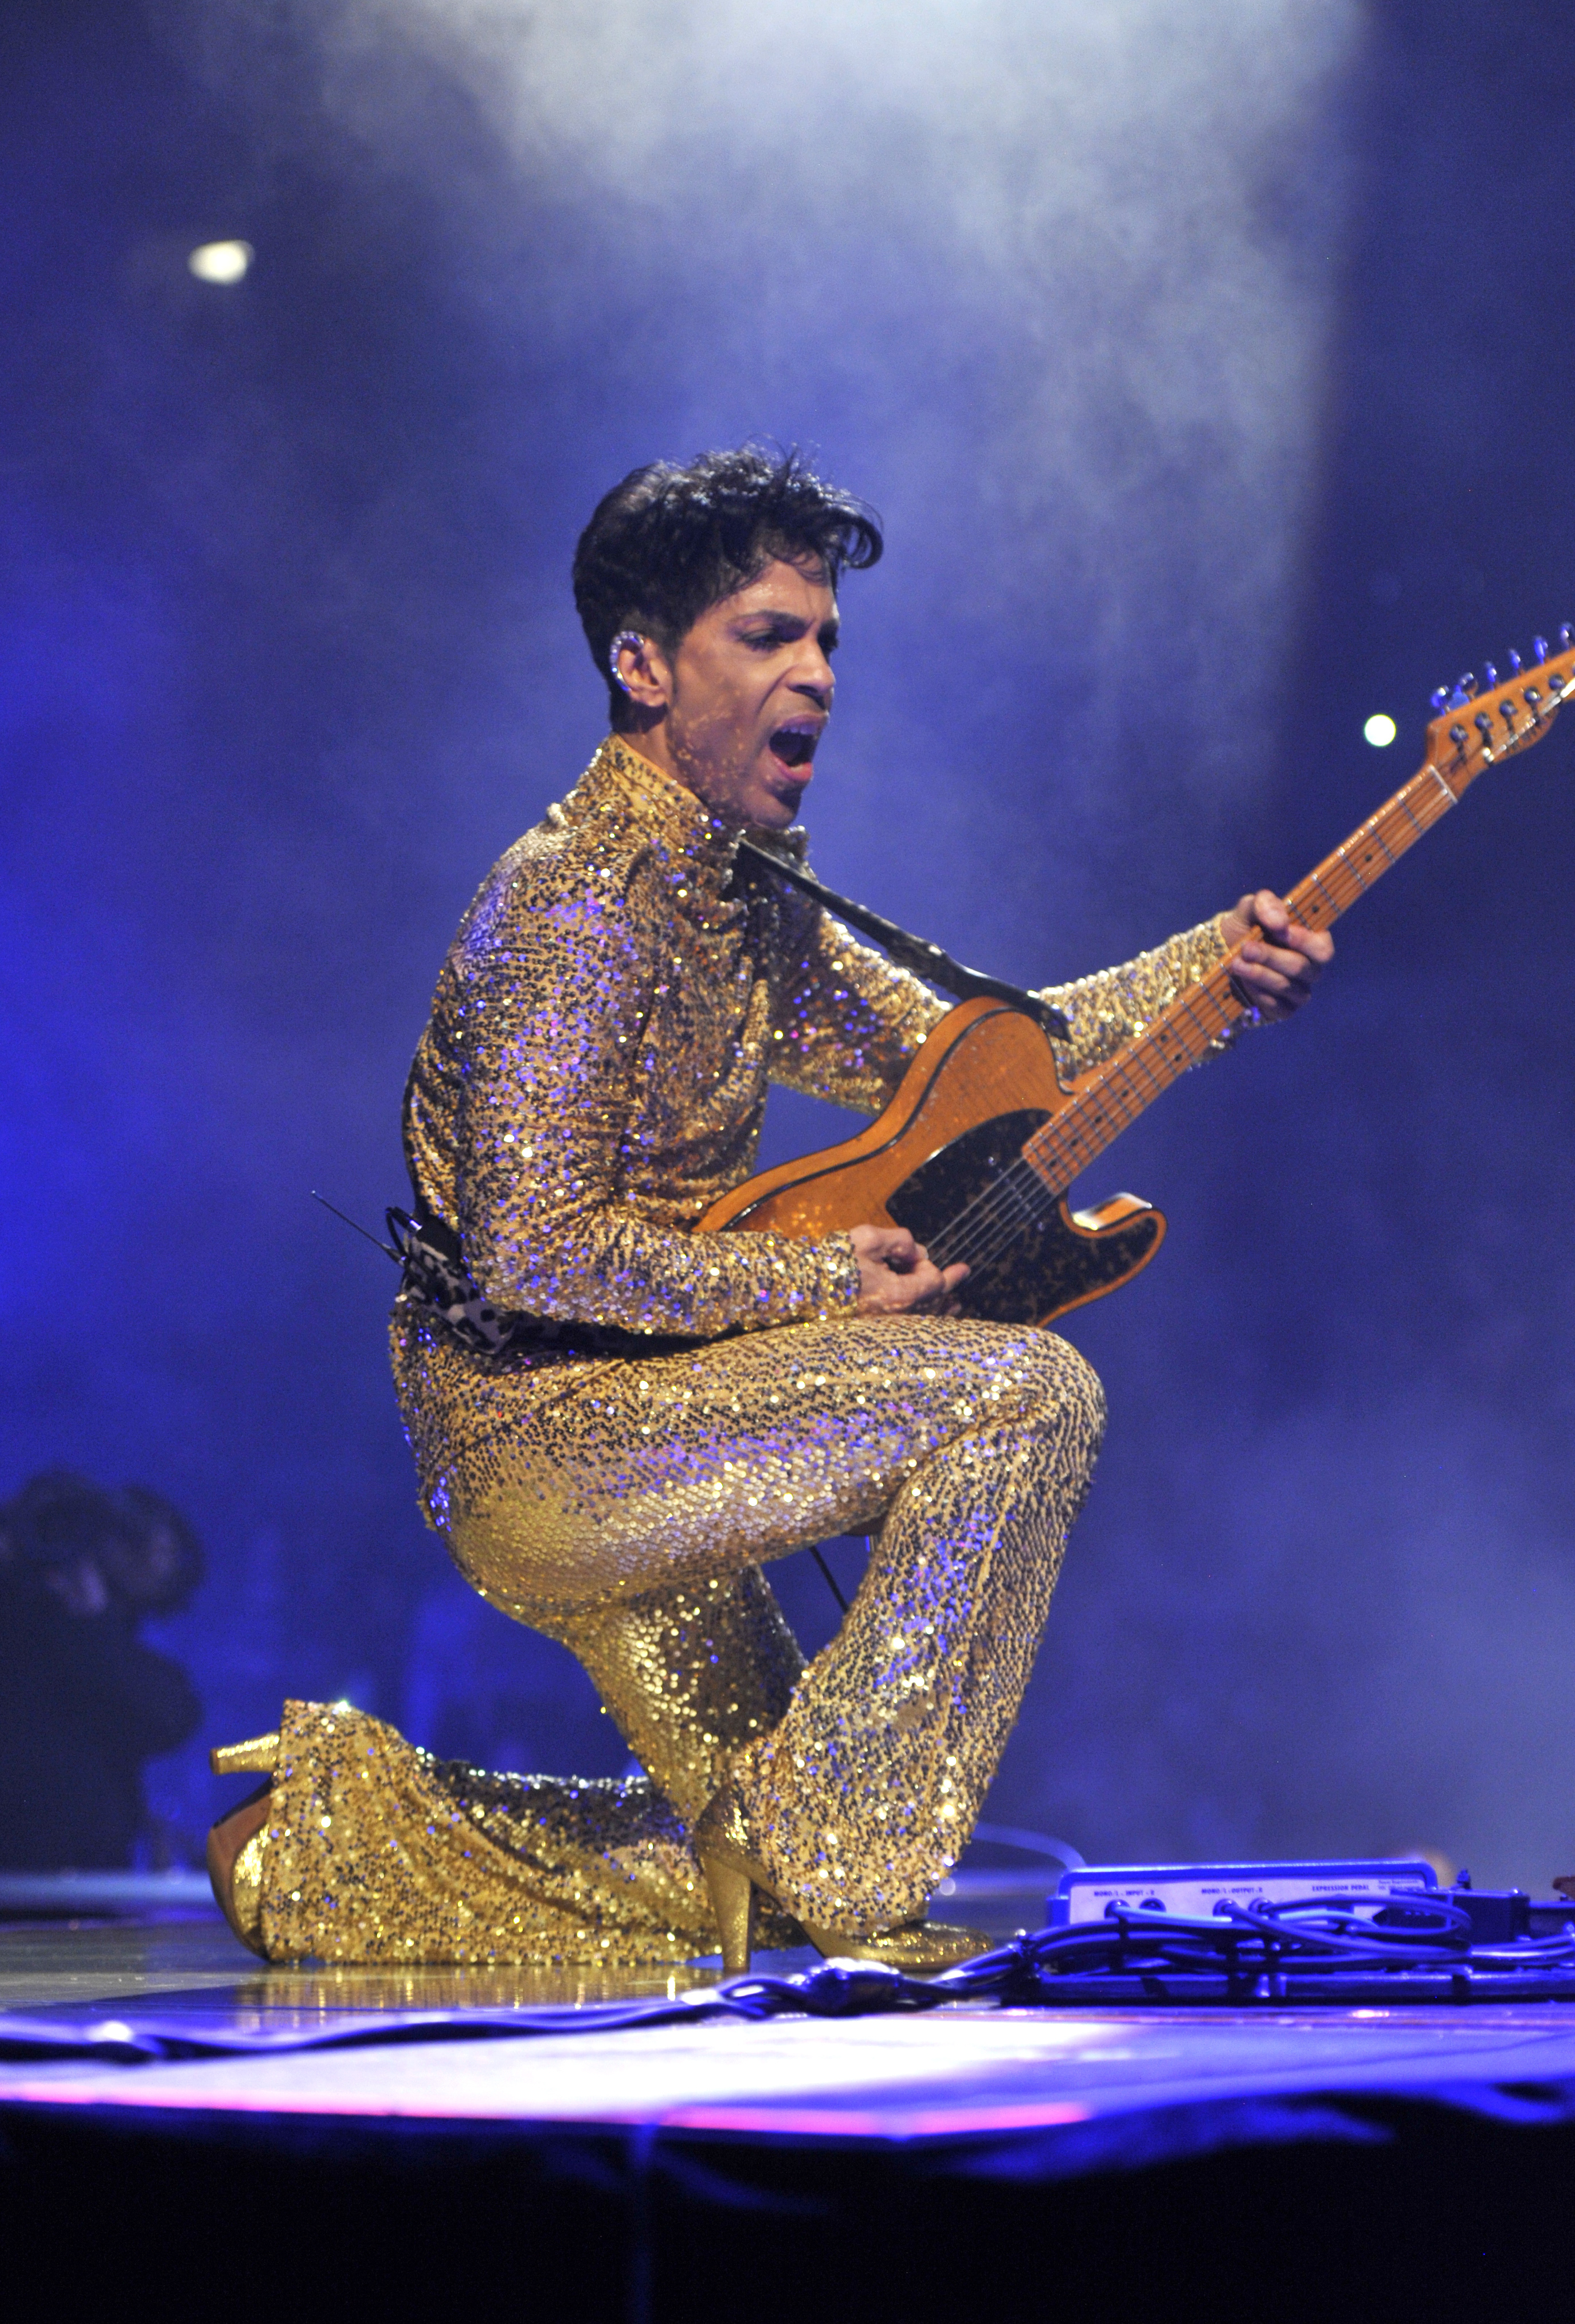 Prince's vacation home could go on the market